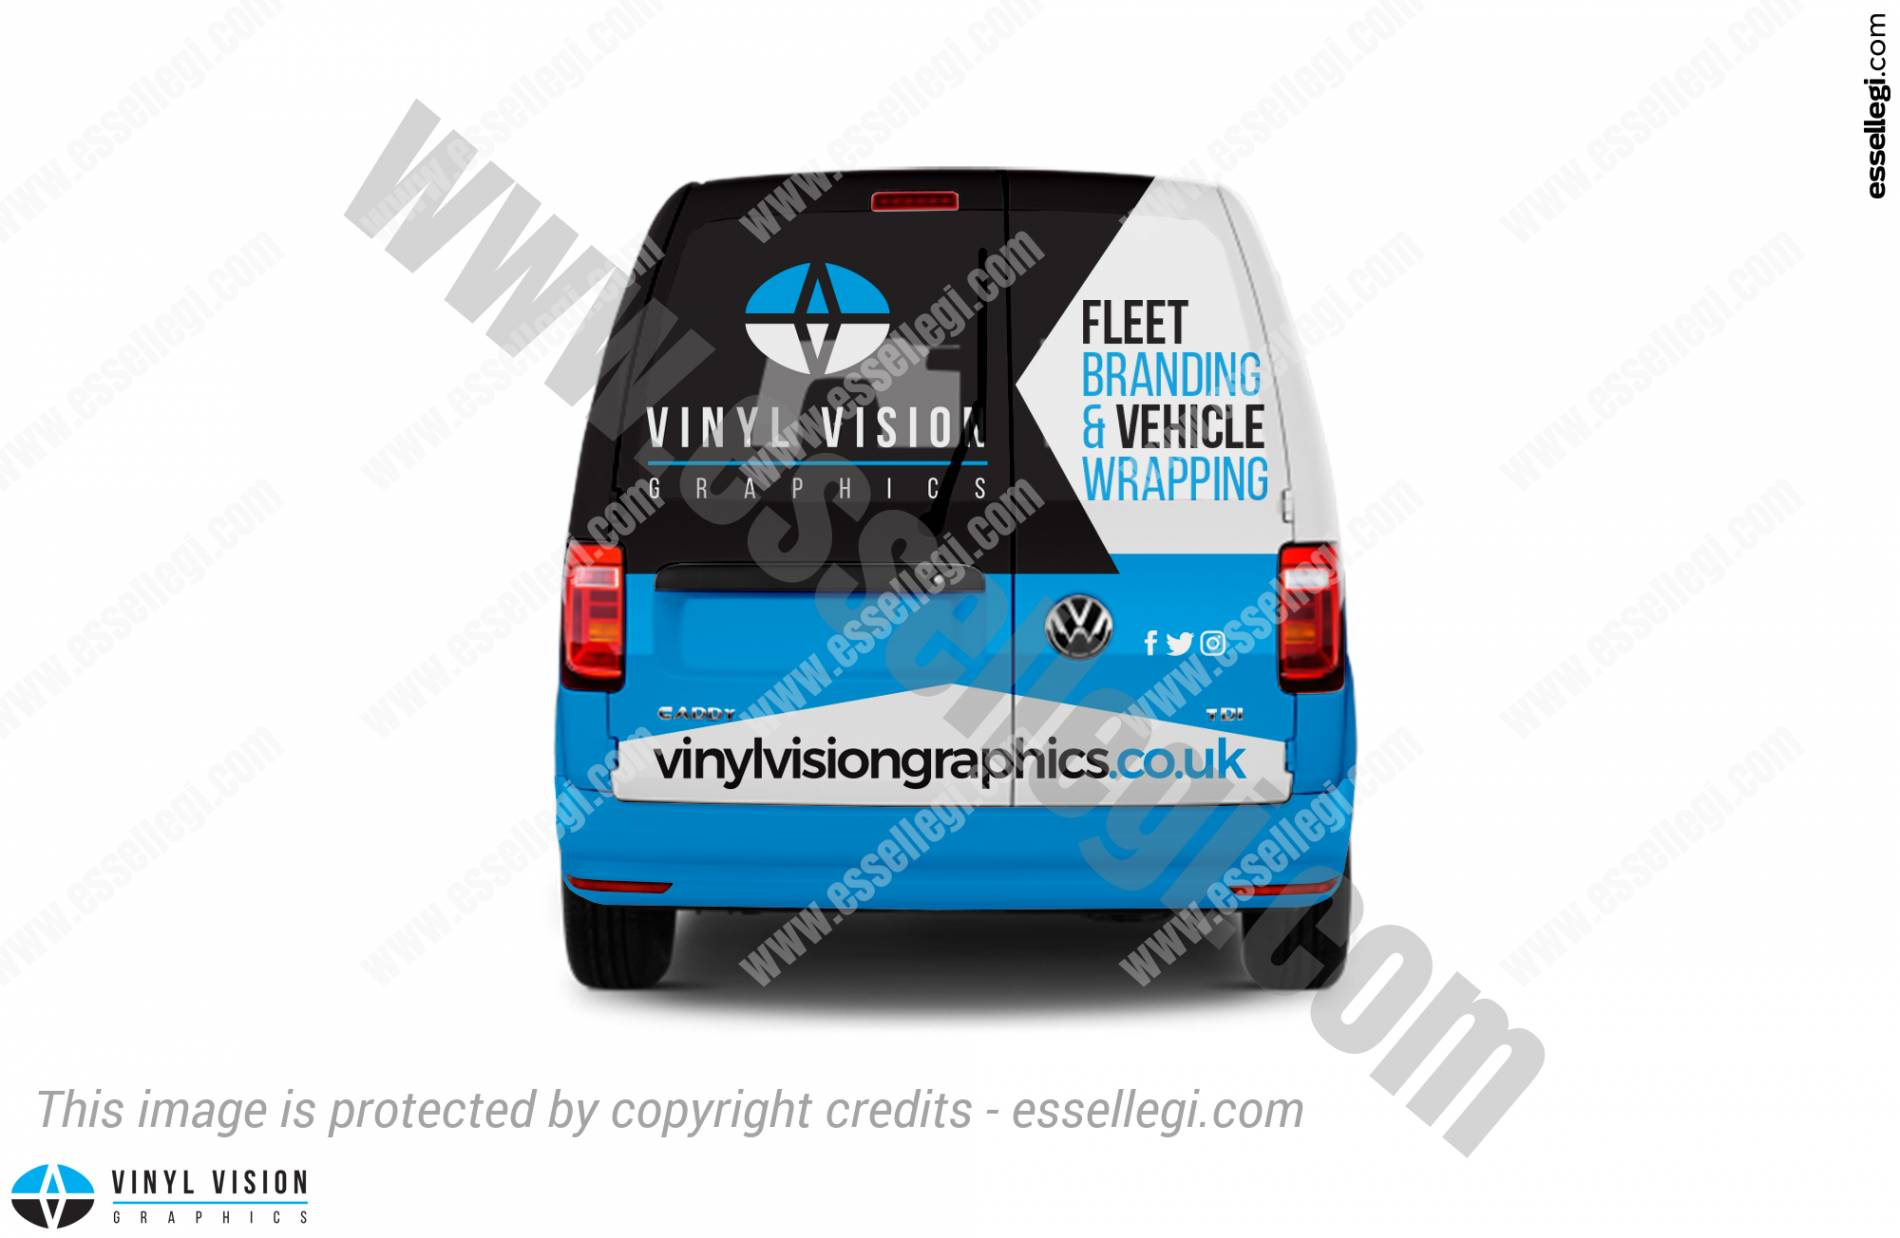 Volkswagen Caddy Wrap Design. Volkswagen Caddy | Van Wrap Design by Essellegi. Van Signs, Van Signage, Van Wrapping, Van Signwriting, Van Wrap Designer, Signs for Van, Van Logo, Van Graphic by Essellegi.